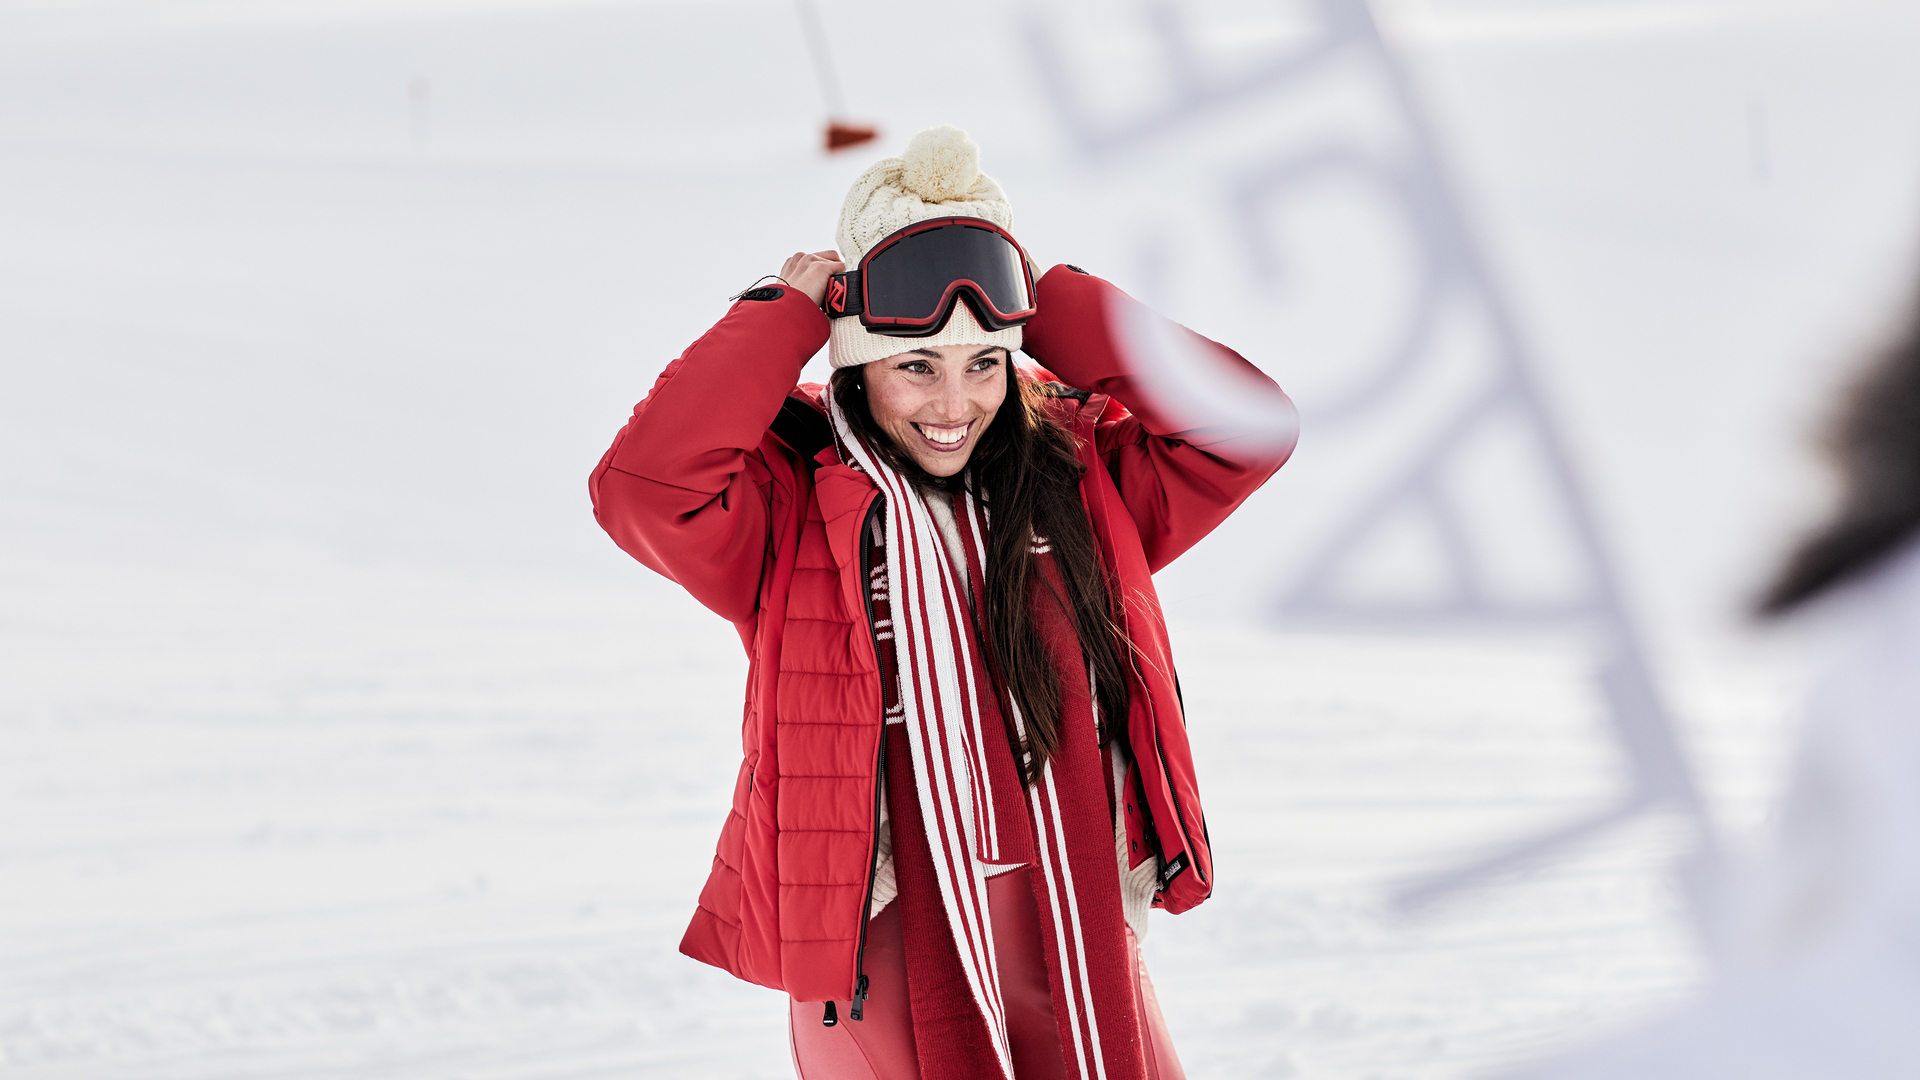 Woman with red jacket smiling in the snow